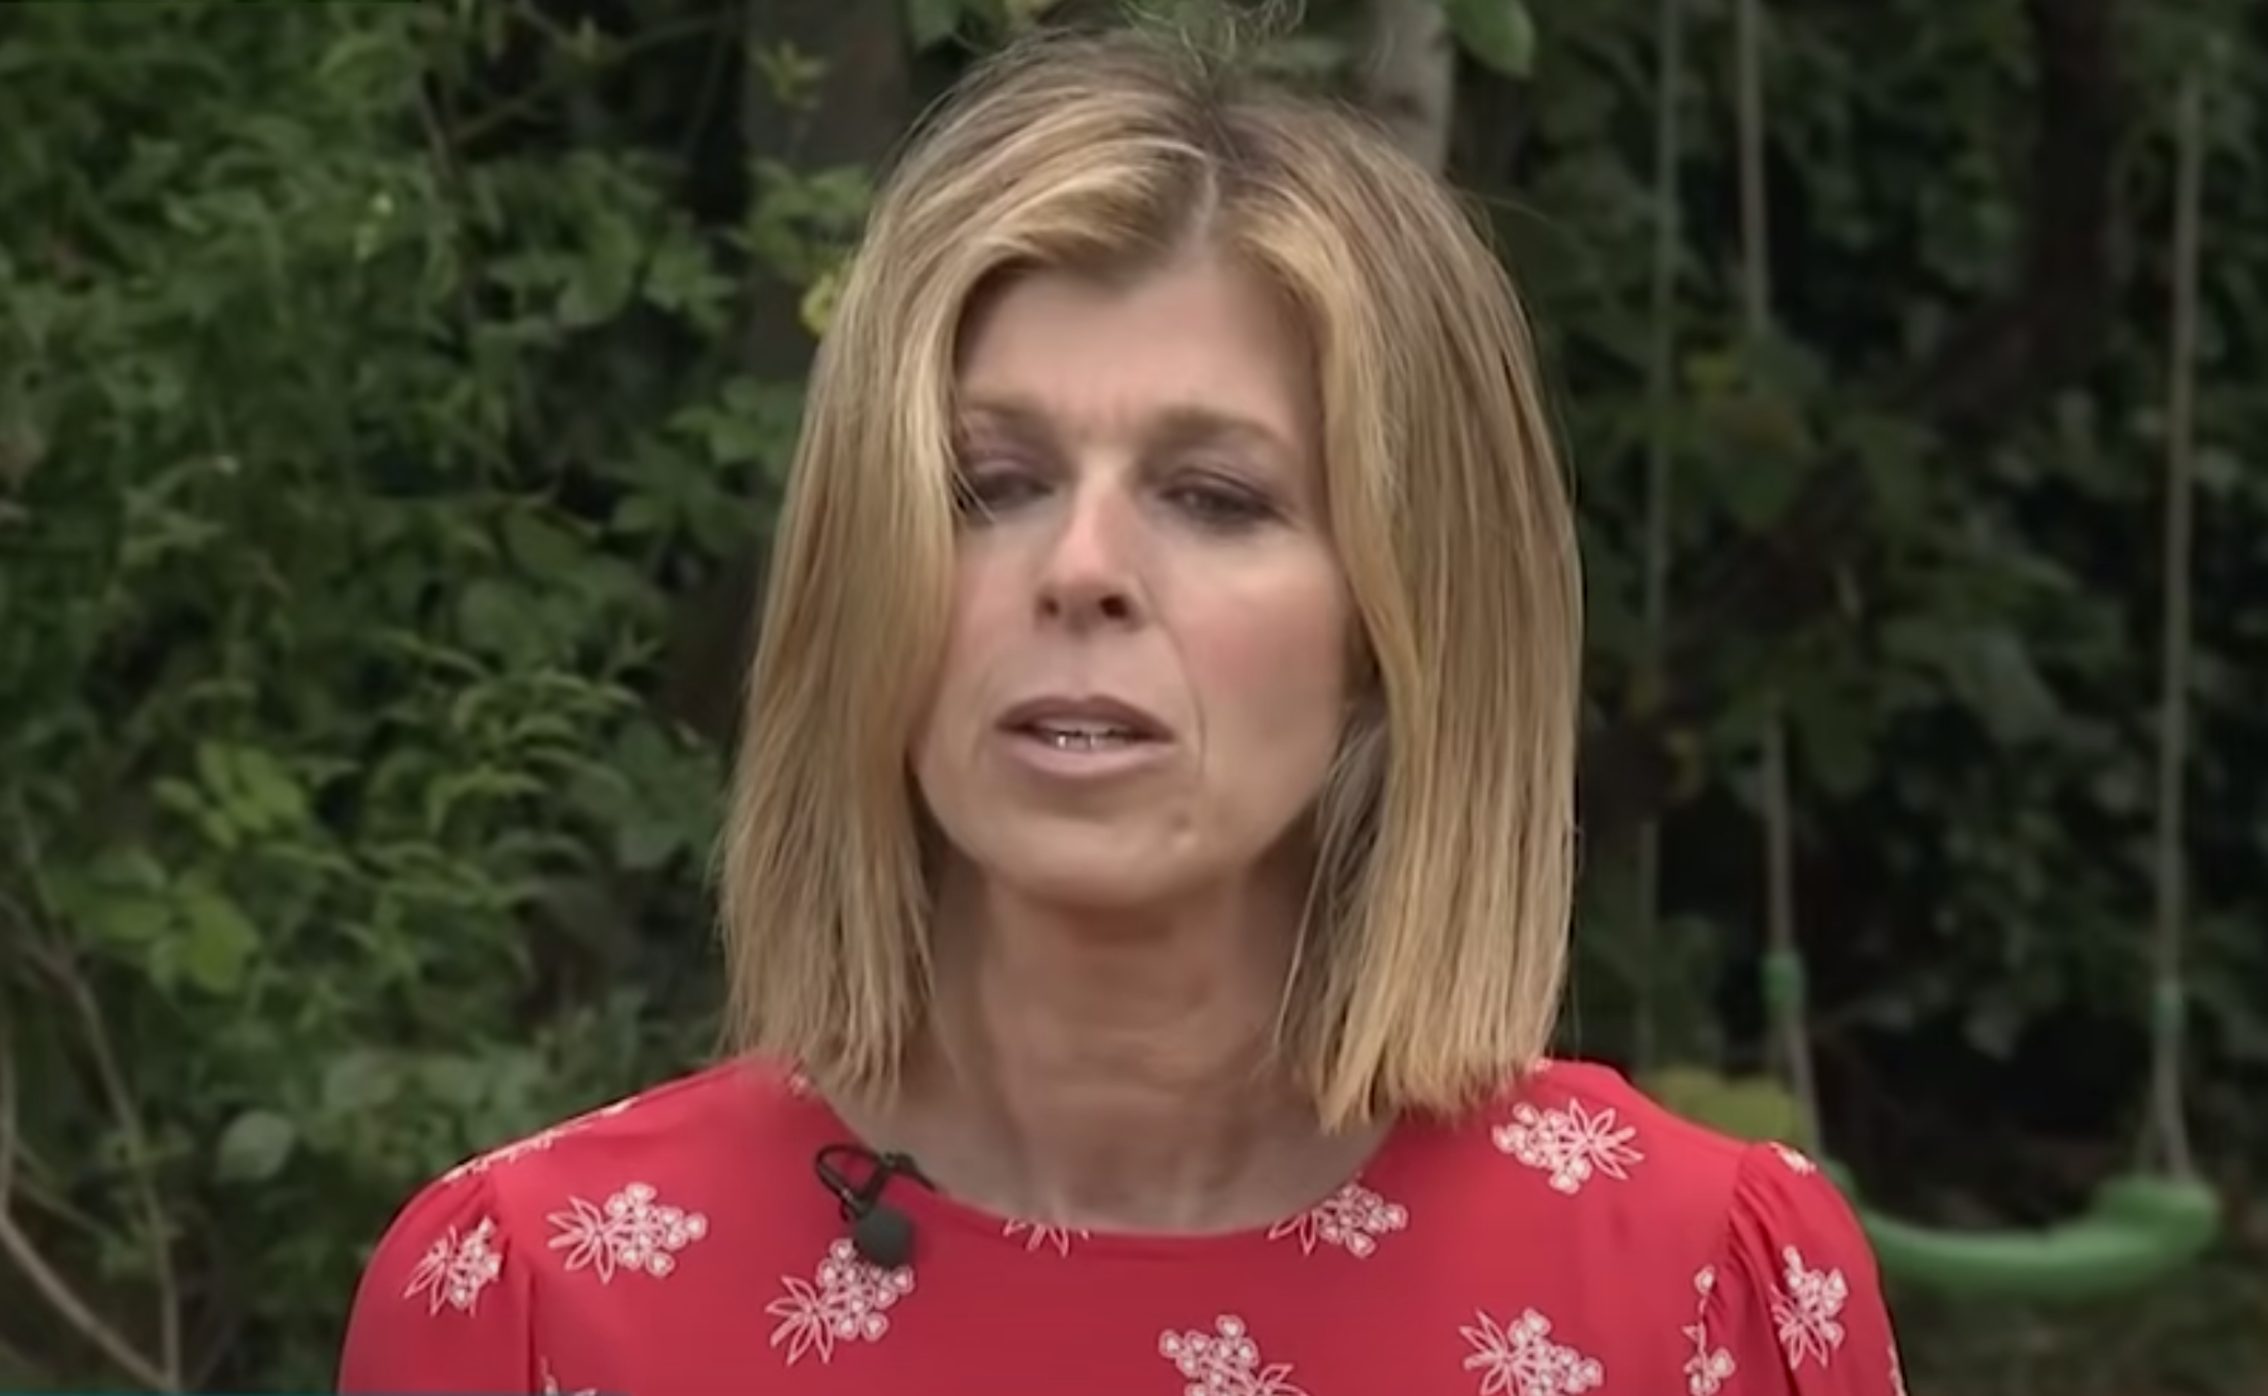 Kate Garraway urged to stay hopeful as fans share stories of coronavirus recoveries